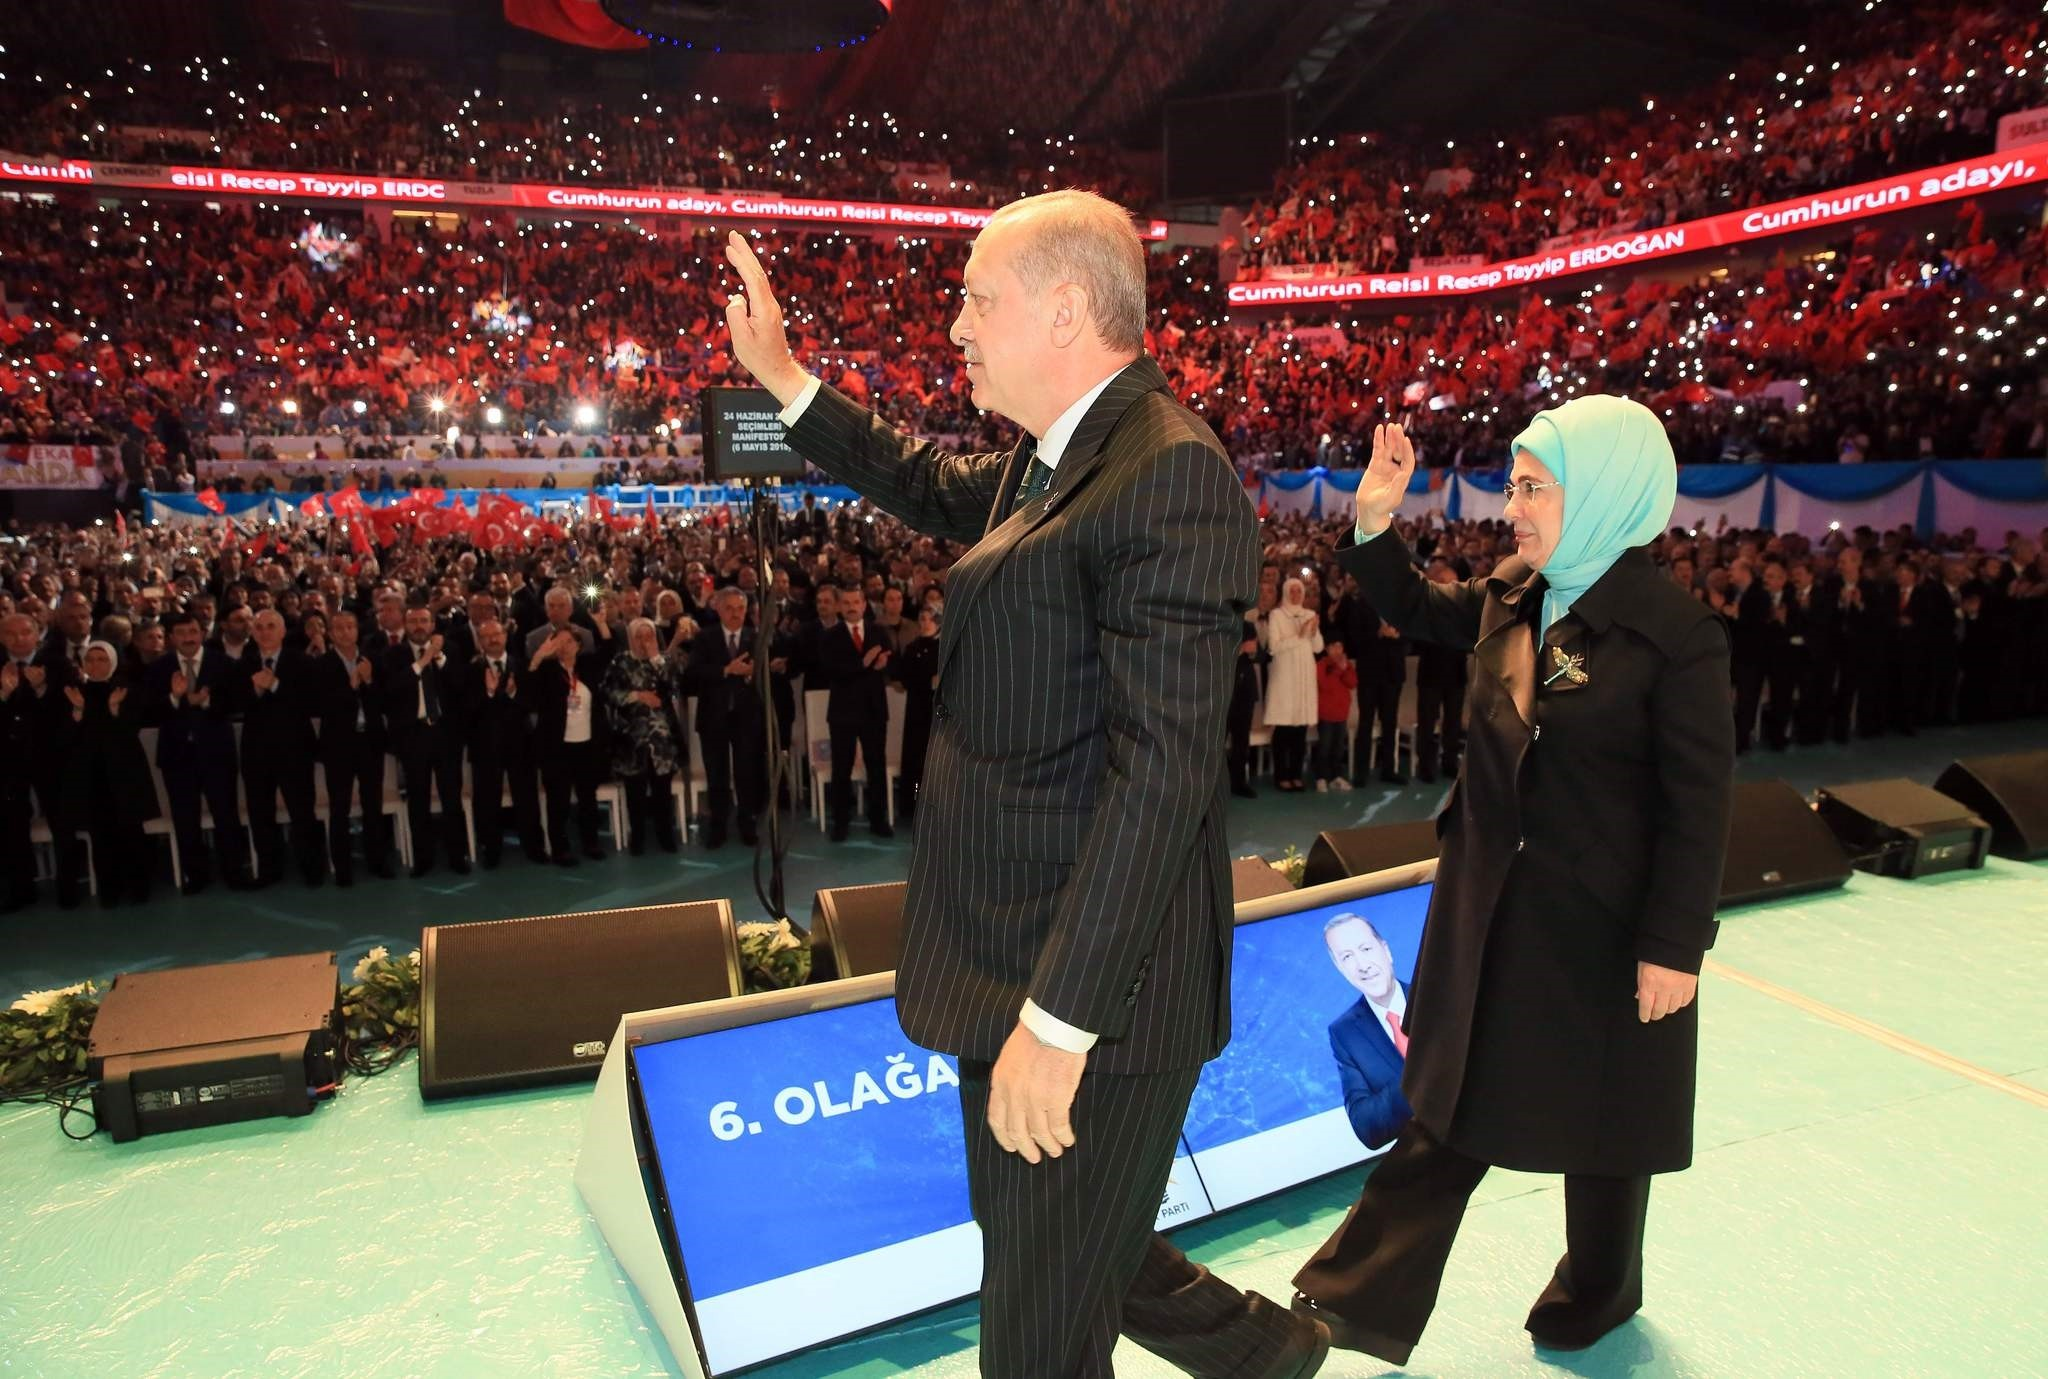 President Recep Tayyip Erdogu0306an and First Lady Emine Erdogu0306an wave to supporters prior to his speech revealing his ruling partyu2019s manifesto ahead of snap elections, in Istanbul, May 6.